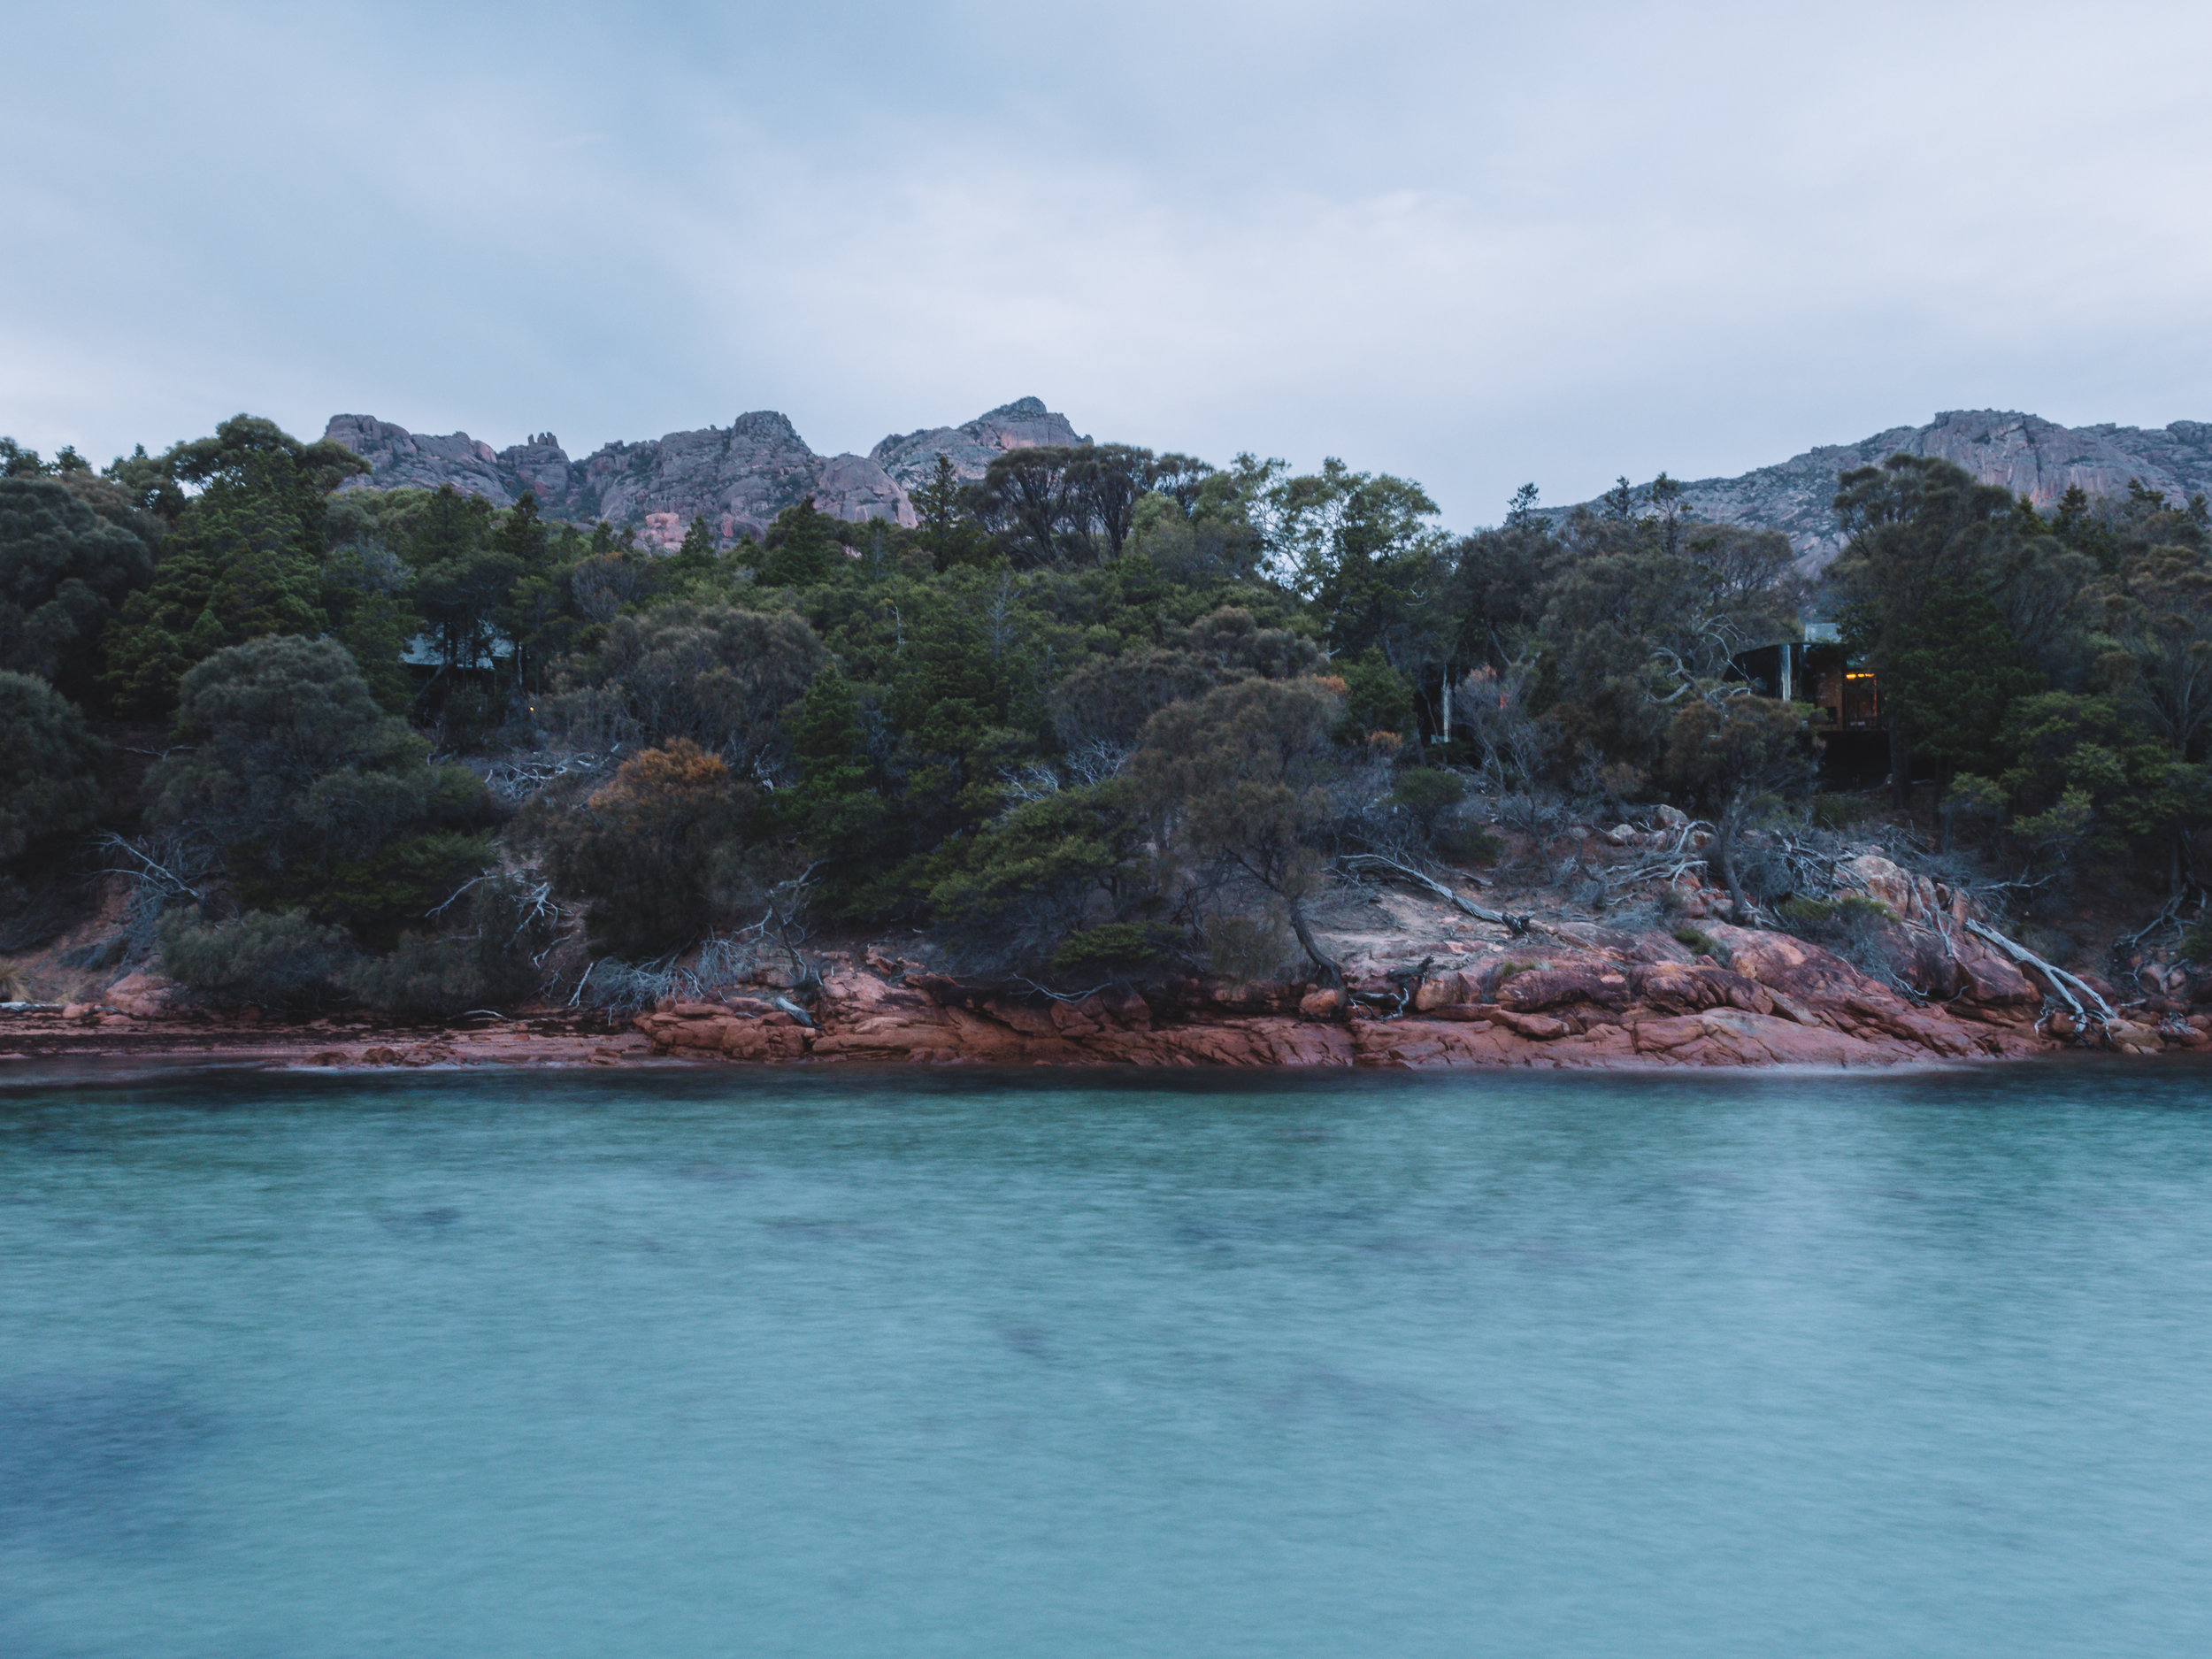 Freycinet Lodge with The Hazards in the background, Coles Bay, Tasmania